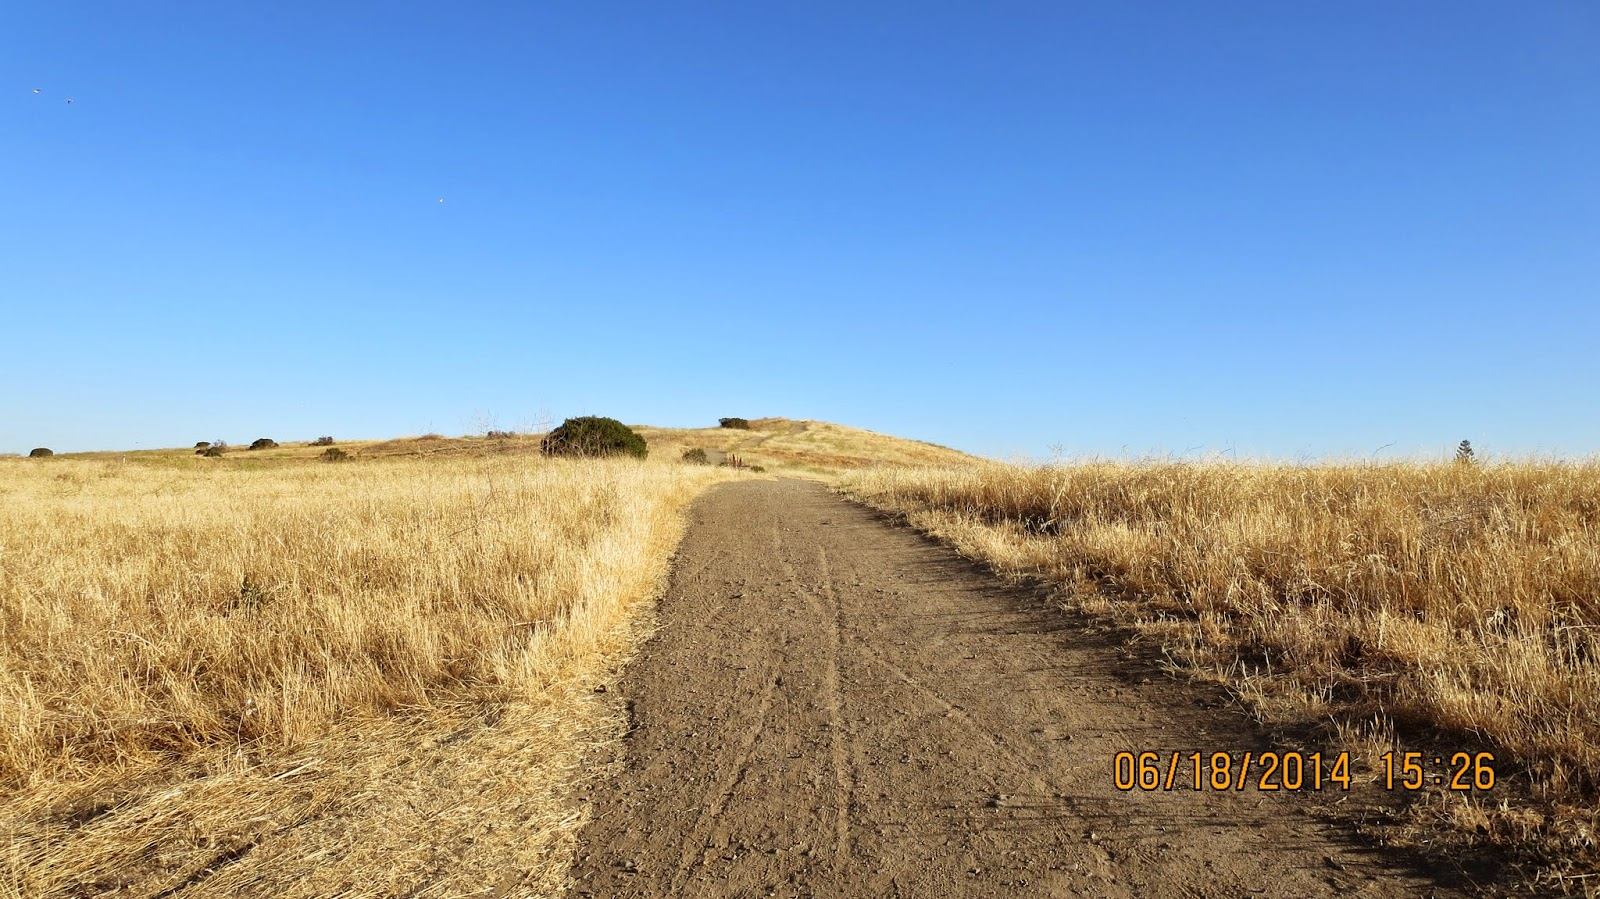 Trail at Vista Slope in Mountain View, California